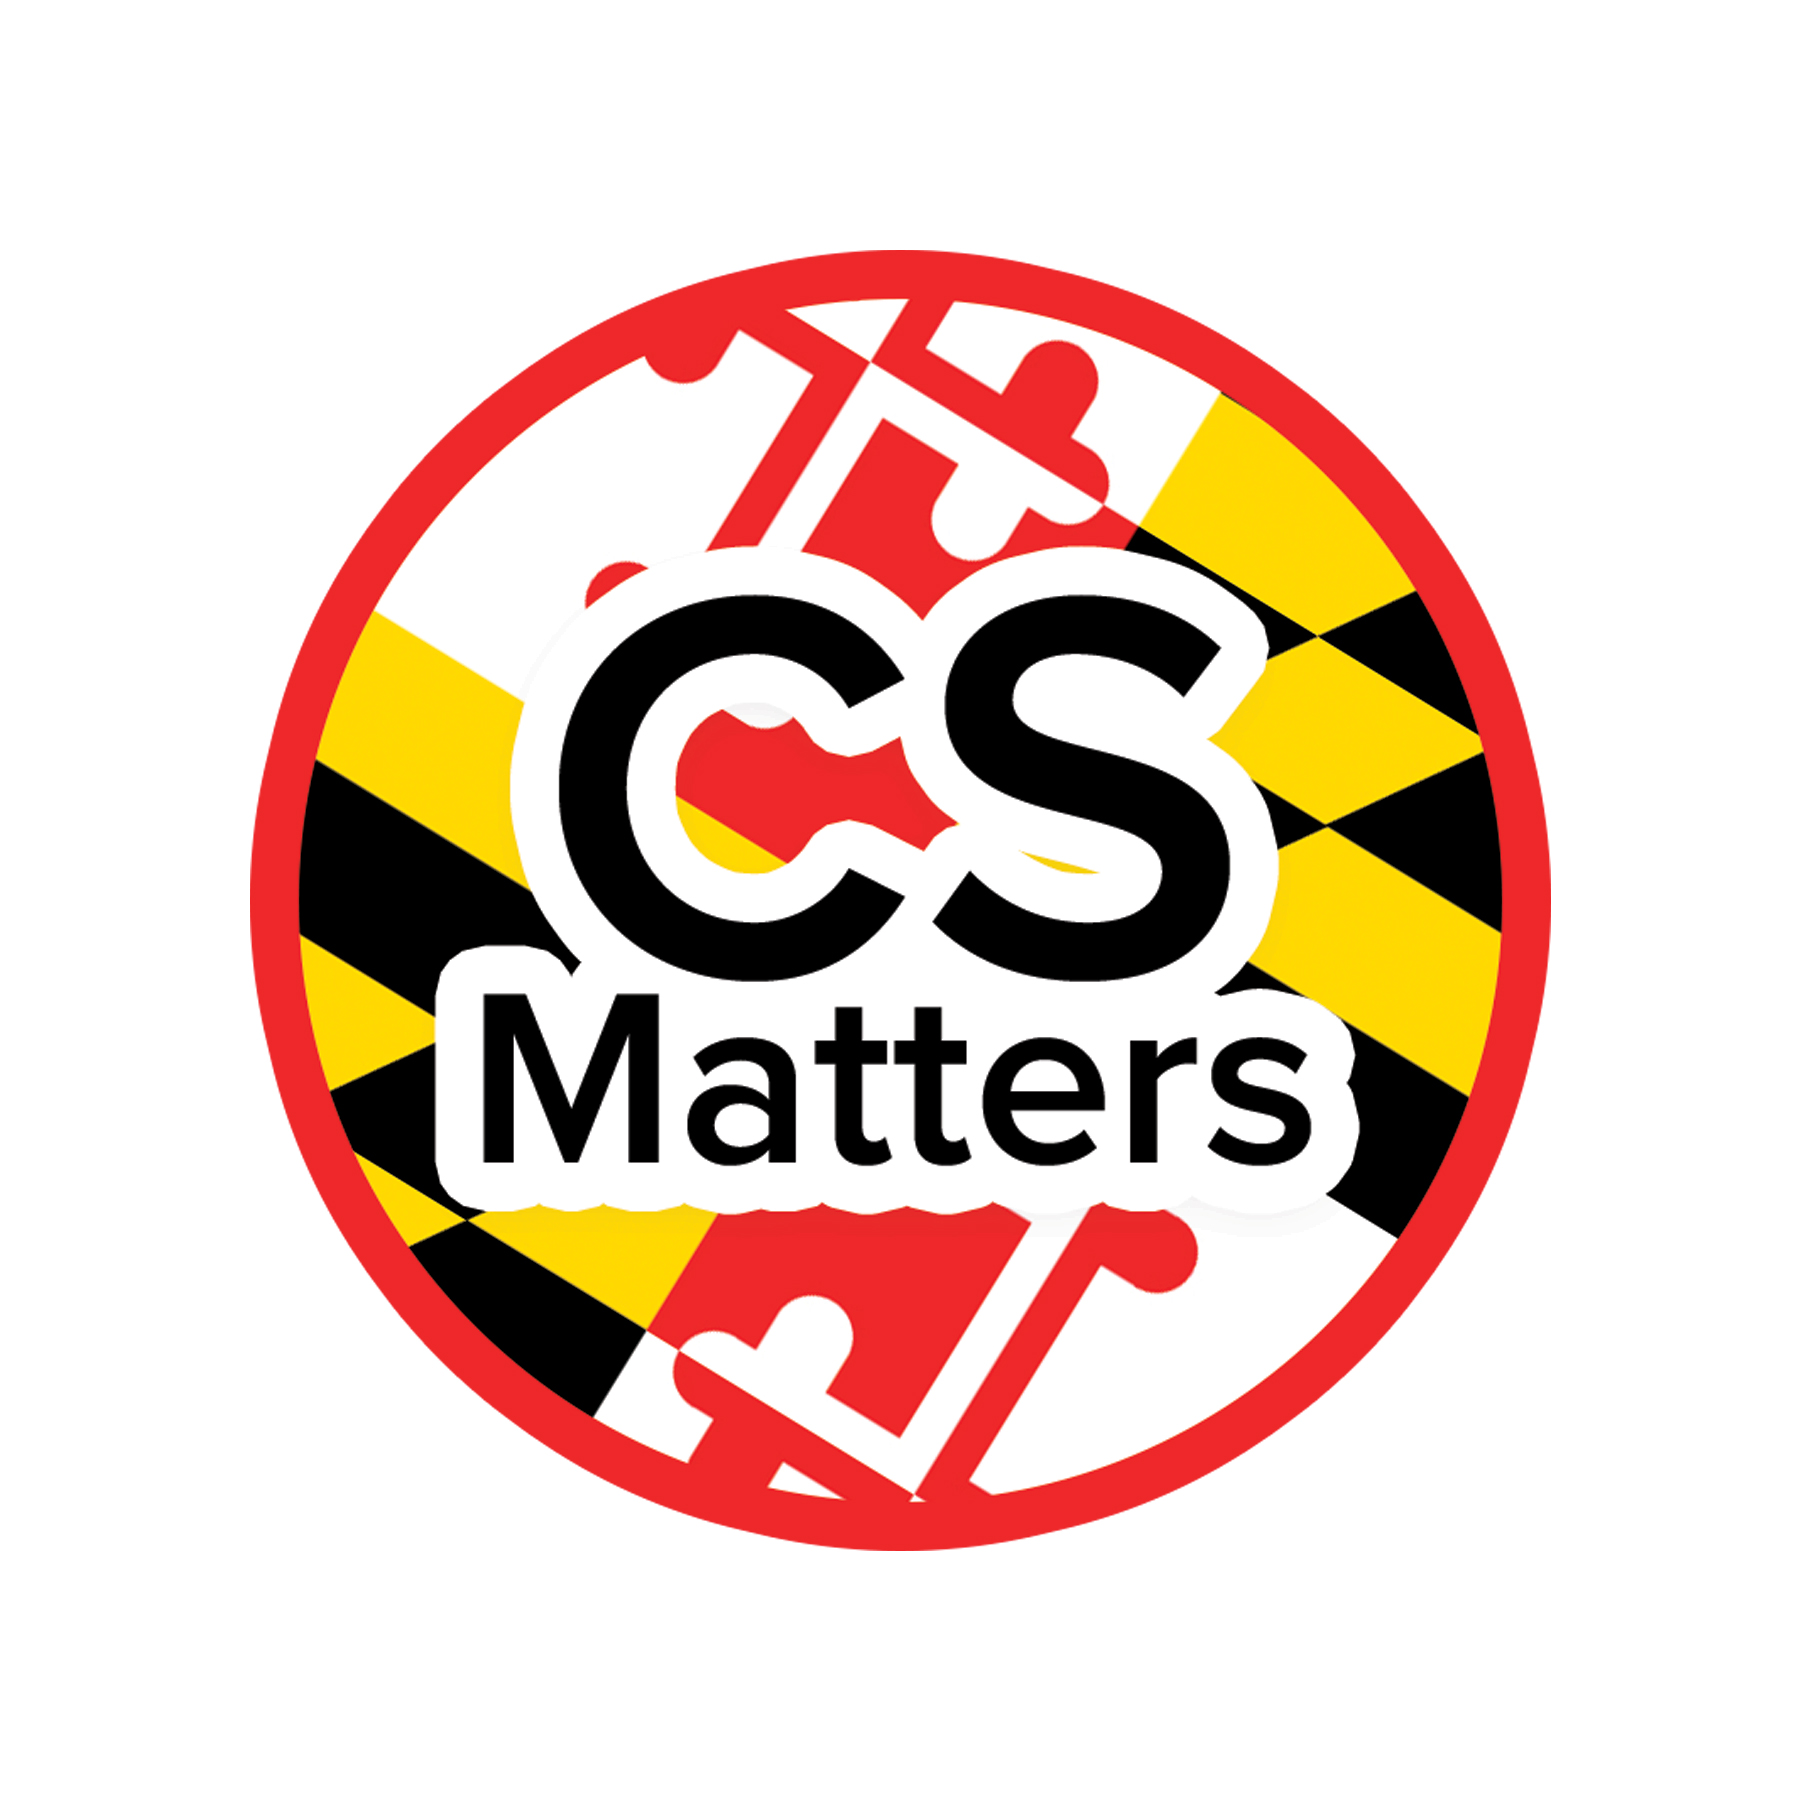 CS Matters in Maryland Logo